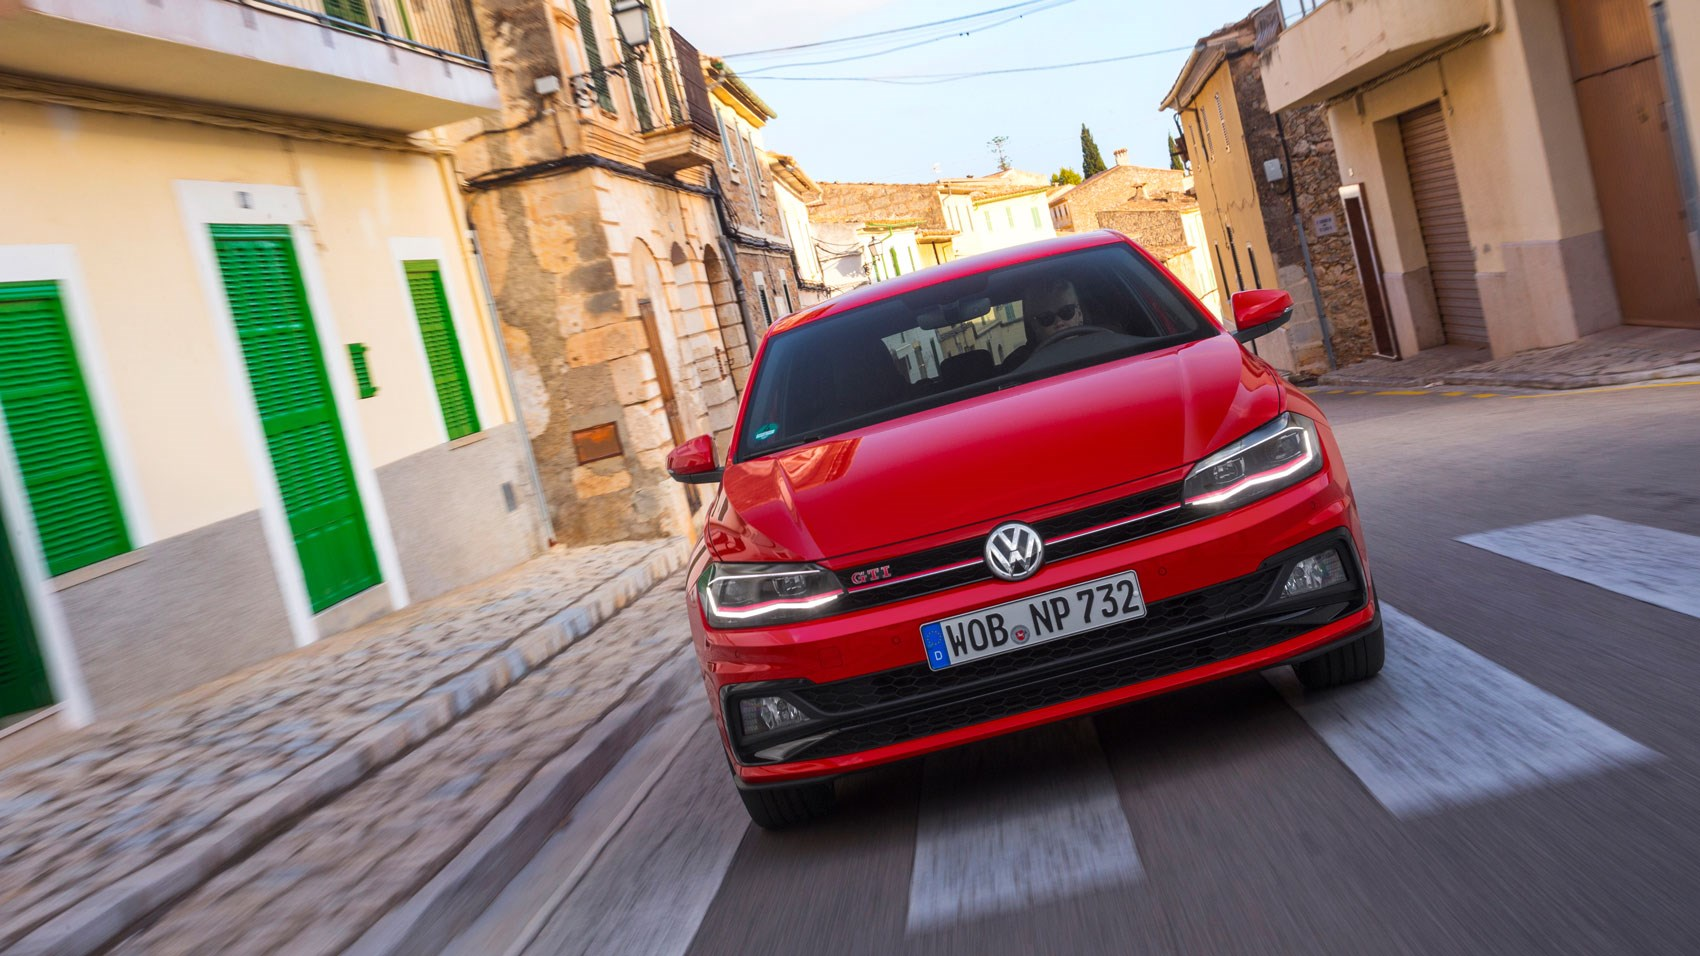 VW Polo GTI: UK prices from £21,500